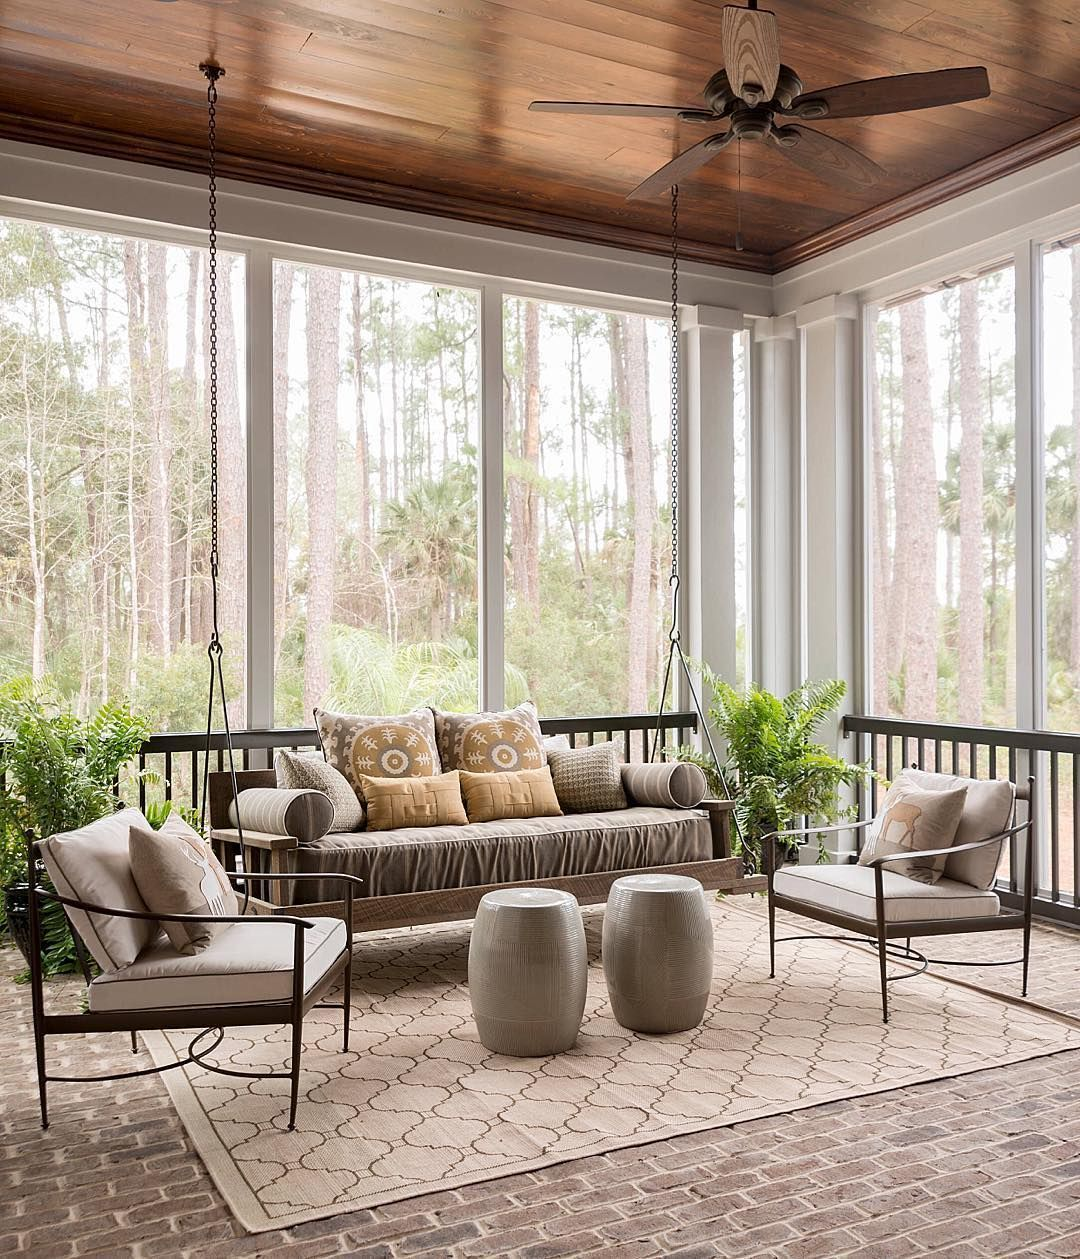 pictures remodel for refacing primitive to cushions romantic decorate hd screen fireplaces mantel fling plaid over fireplace photos kitchen modern with woven full surround decorating pinterest enjoy how festive highland best hours makeovers tile designs flat on x cost and tv ideas